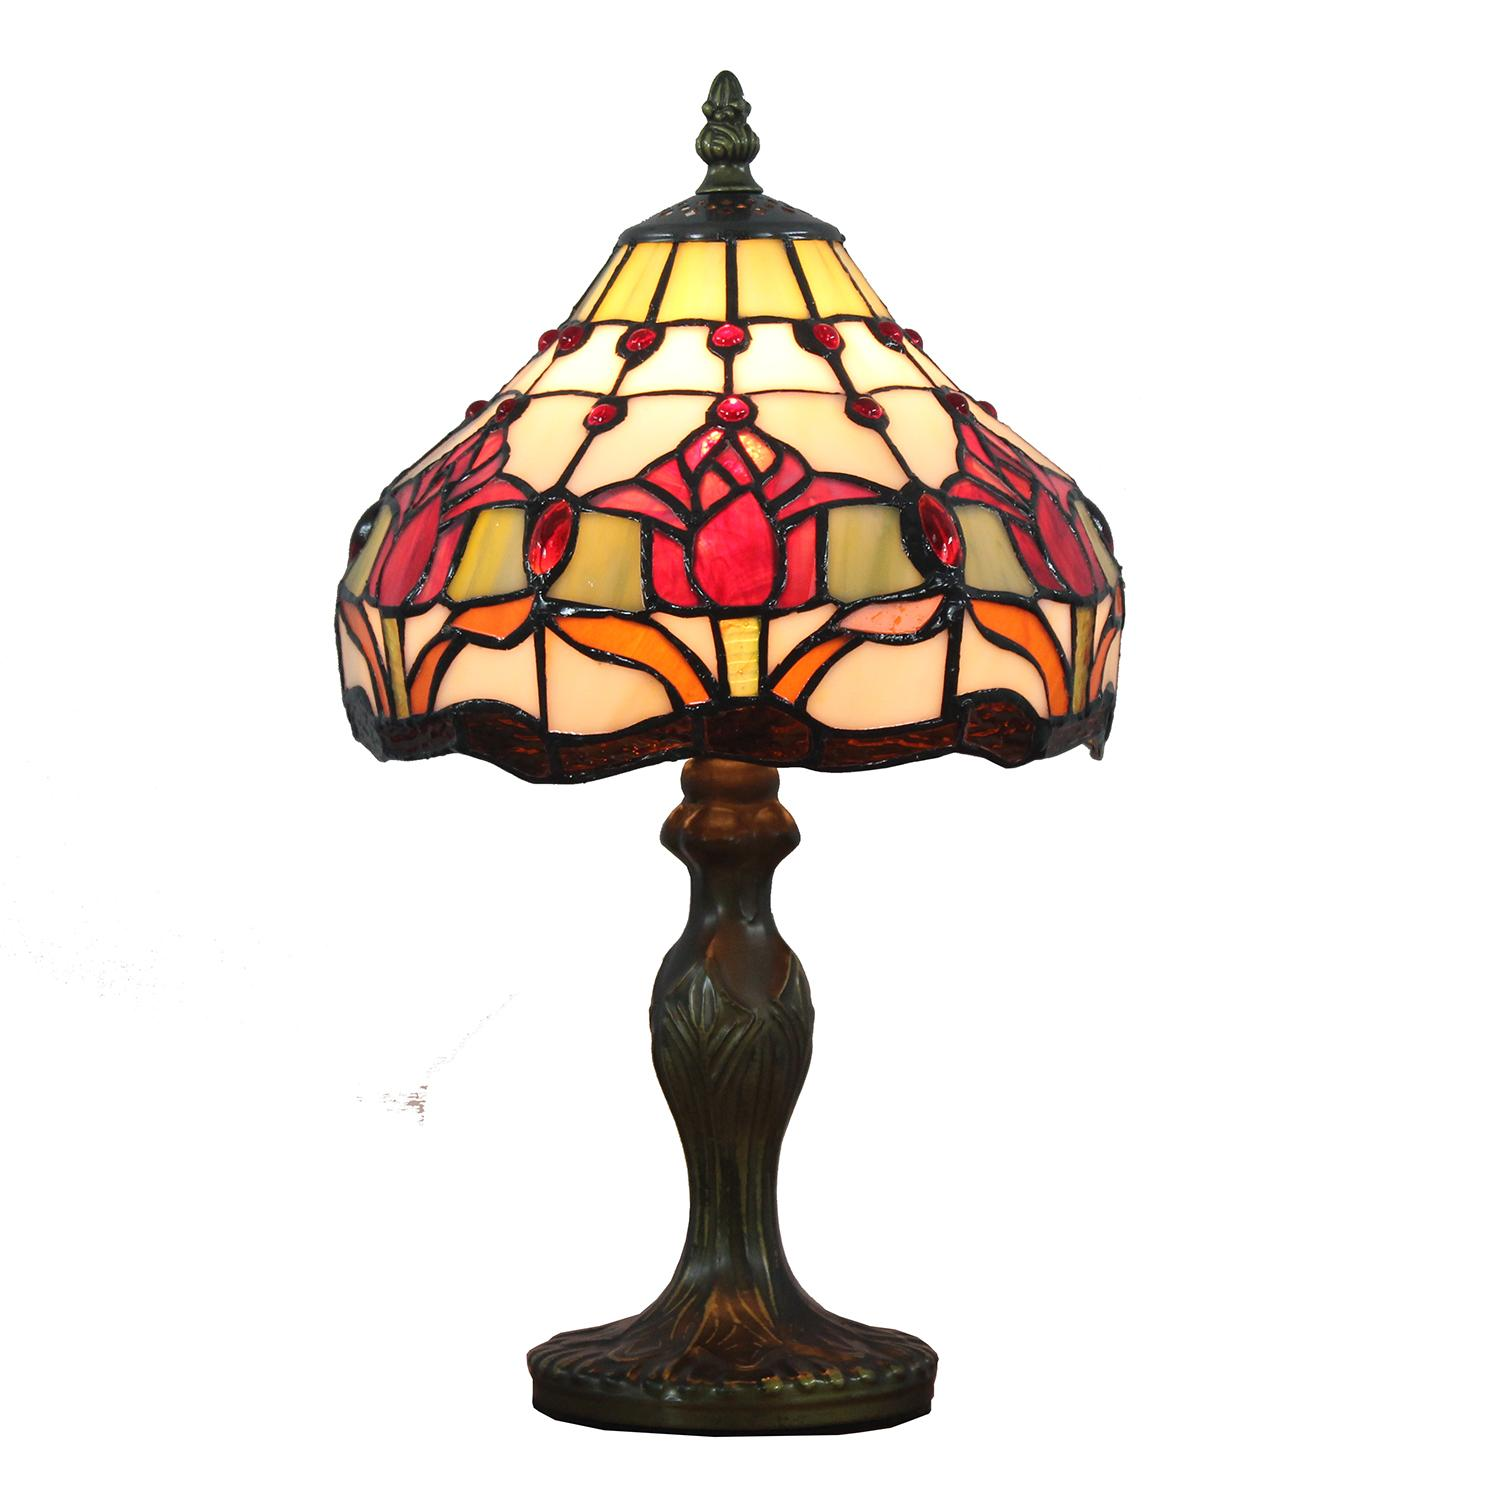 8 inch floral tiffany tulip table lamp stained glass light home 8 inch floral tiffany tulip table lamp stained glass light home hotel floral tiffany iris table lamp stained glass modern bedside desk light online with aloadofball Images